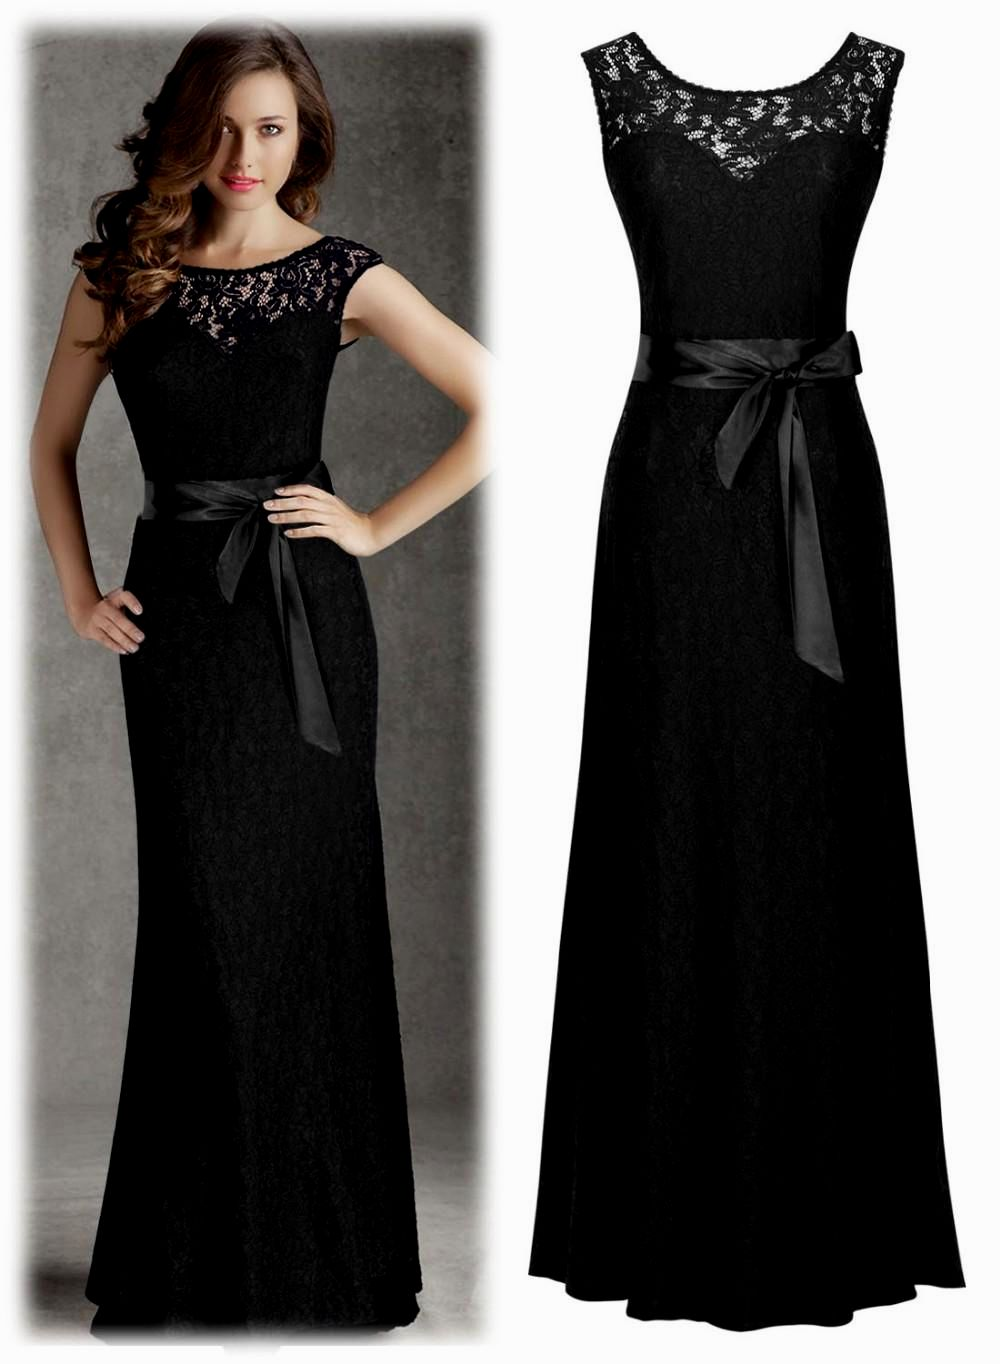 gowns for black tie wedding photo - 1